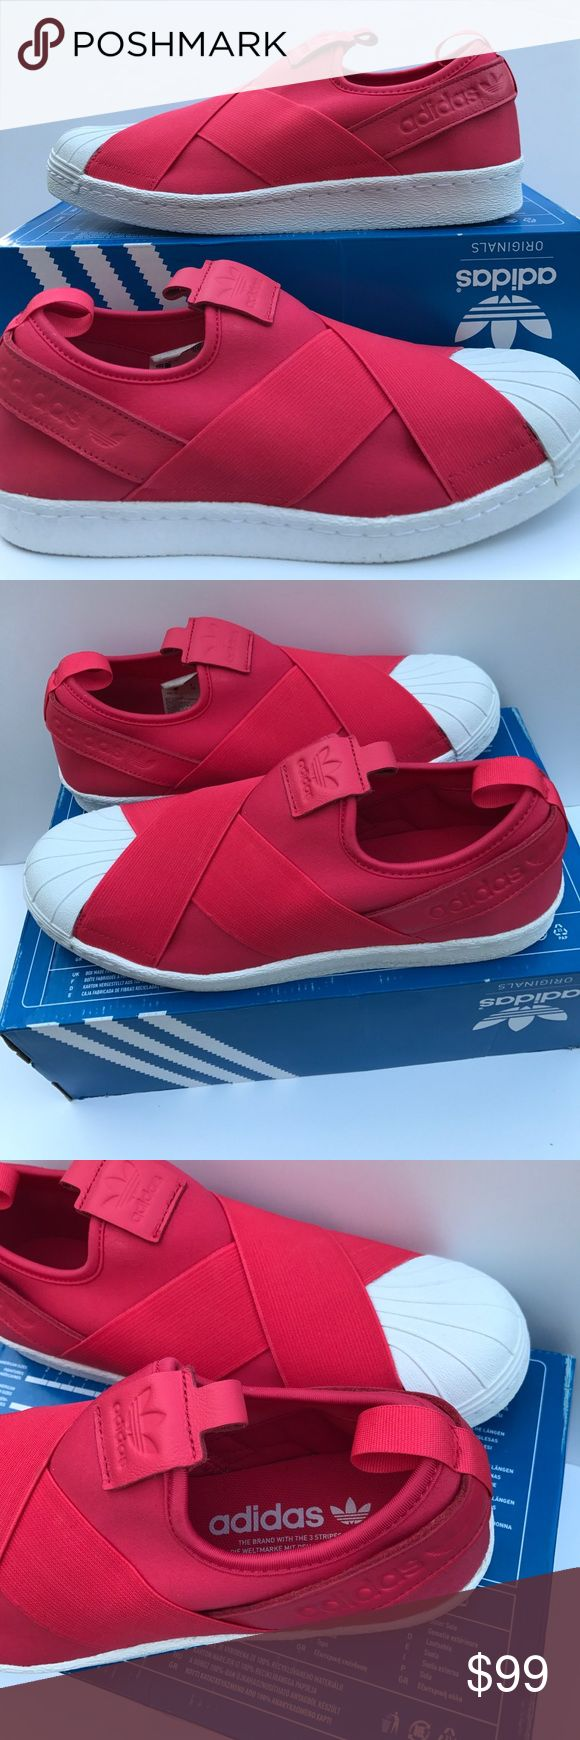 adidas superstar slip on, size 9 adidas shoes new in box - adidas superstar slip ons, corpink/flatwhite || these are highly sought after seen on kylie jenner to j lo / even more stunning in person  adidas Shoes